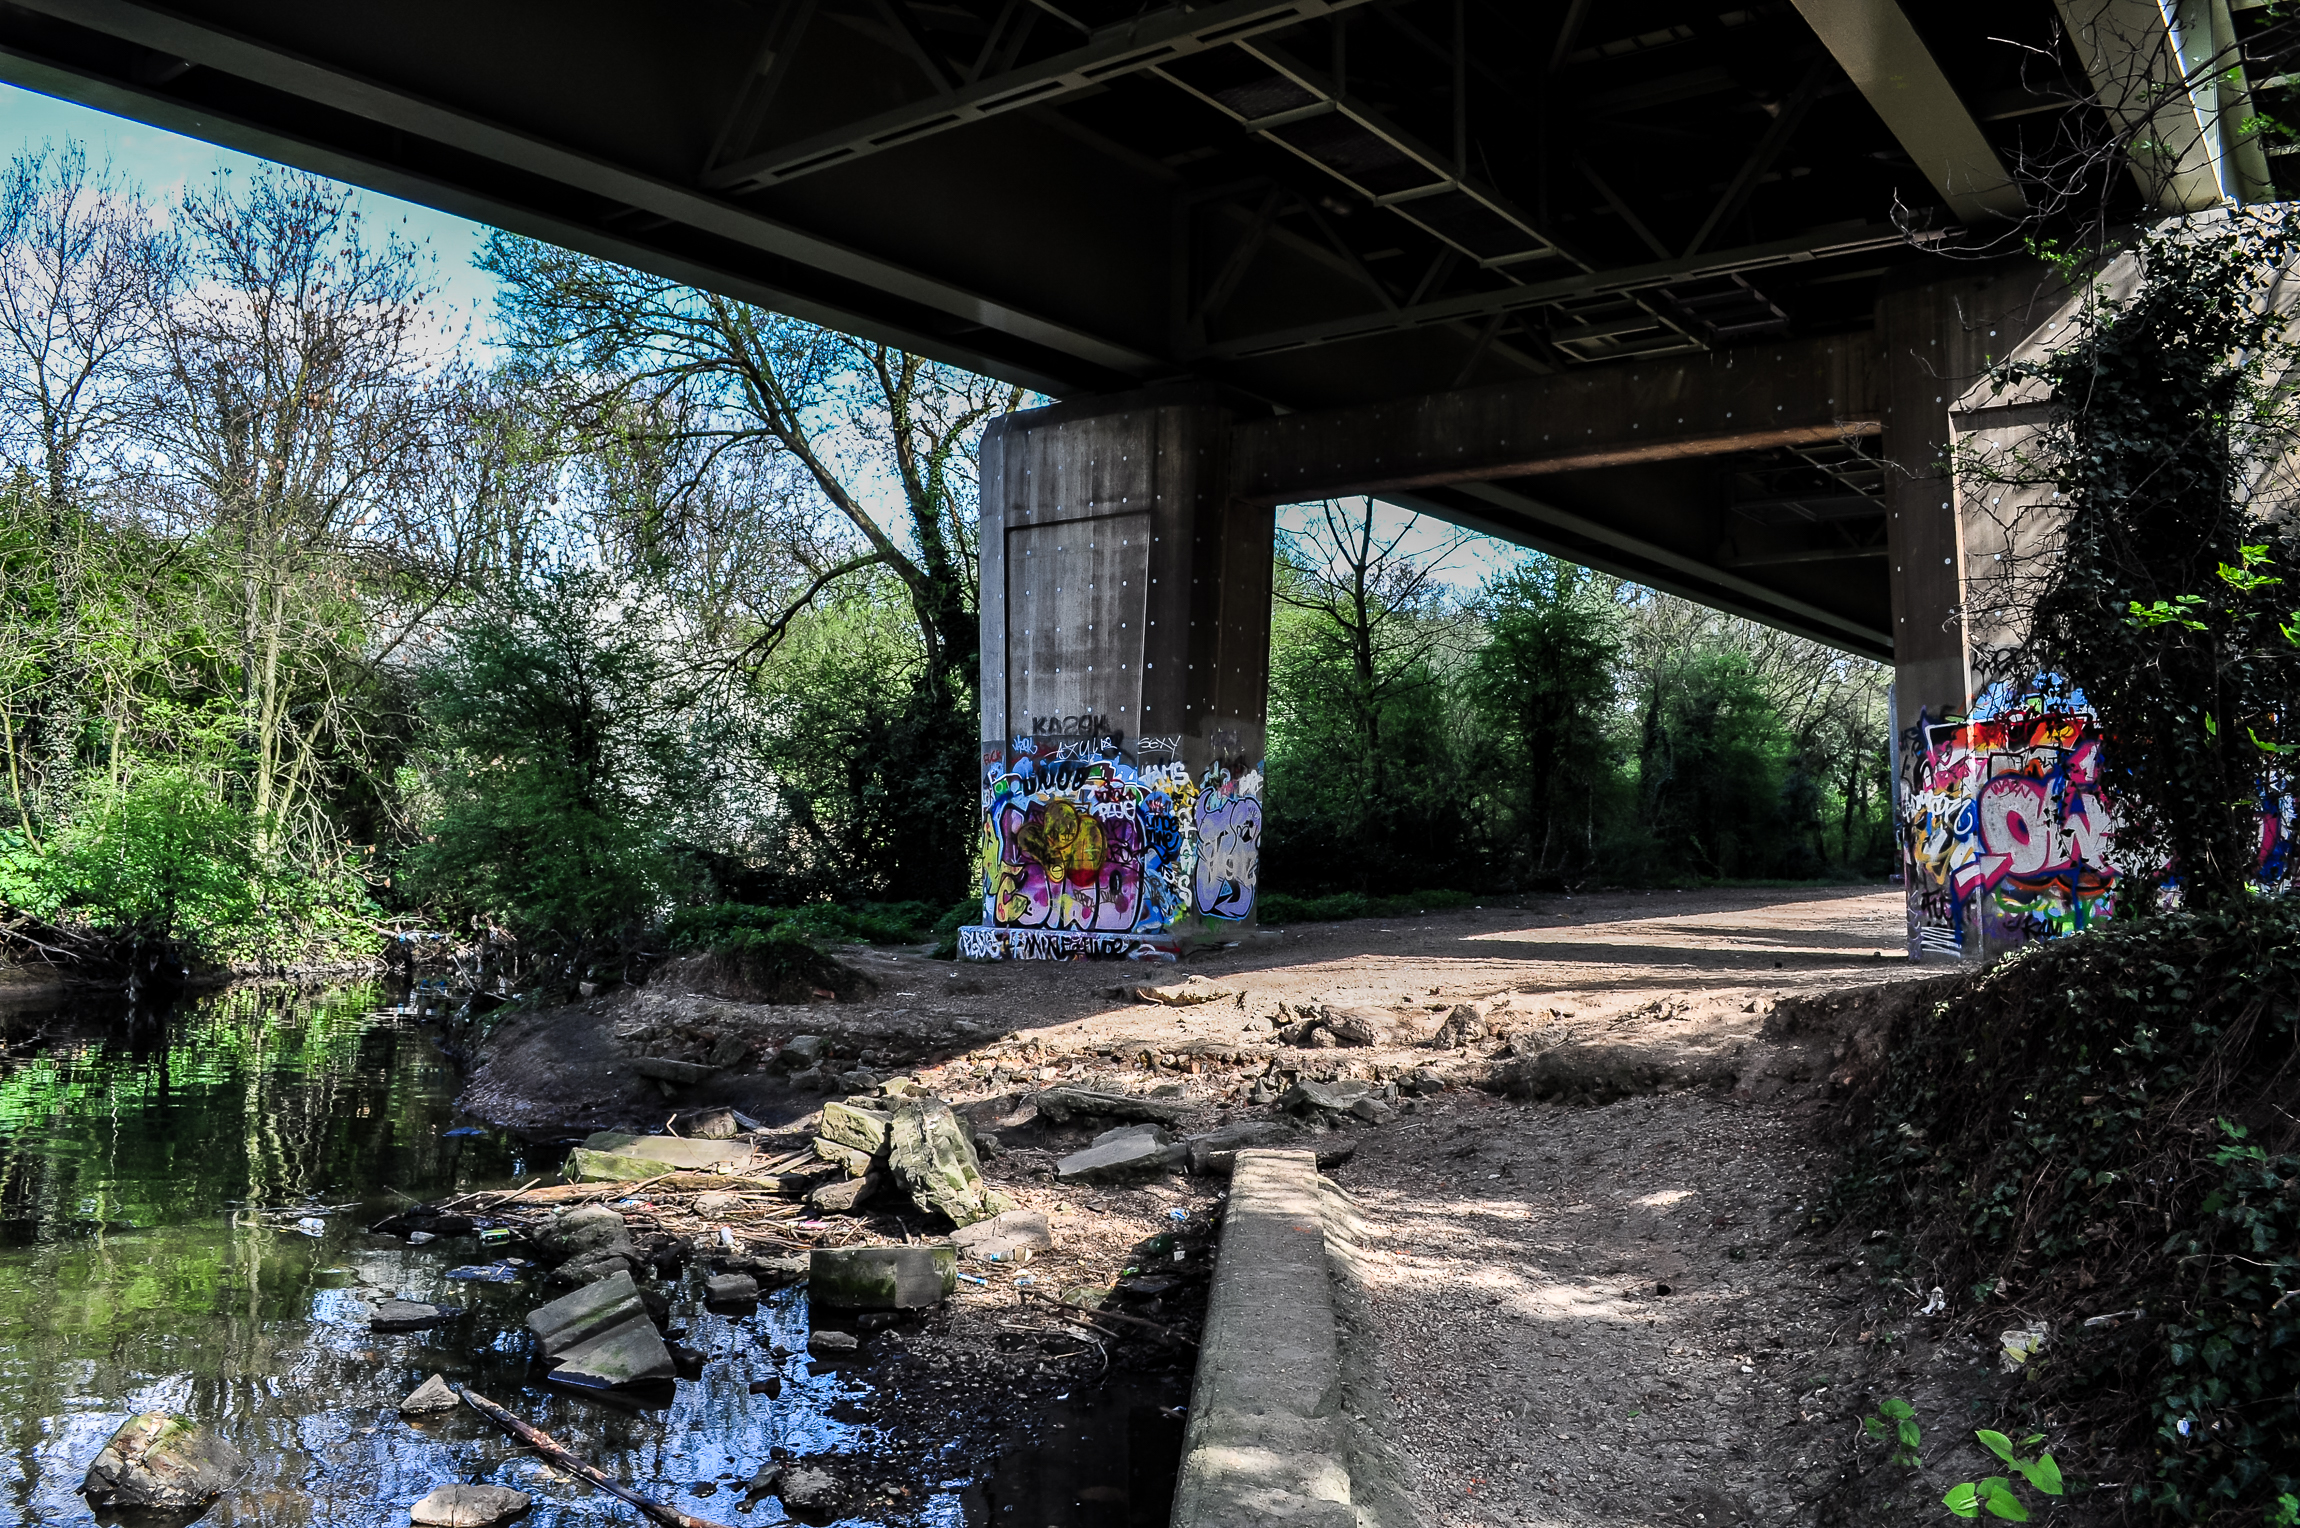 Under The M4 - I love these places….Hidden zones that you wouldn't know were lurking under the main roads that millions pass over every year.This are is especially nice with it's little rivulets and abundant vegetation.The place feels somewhat sci-fi with the huge grey structure traversing it